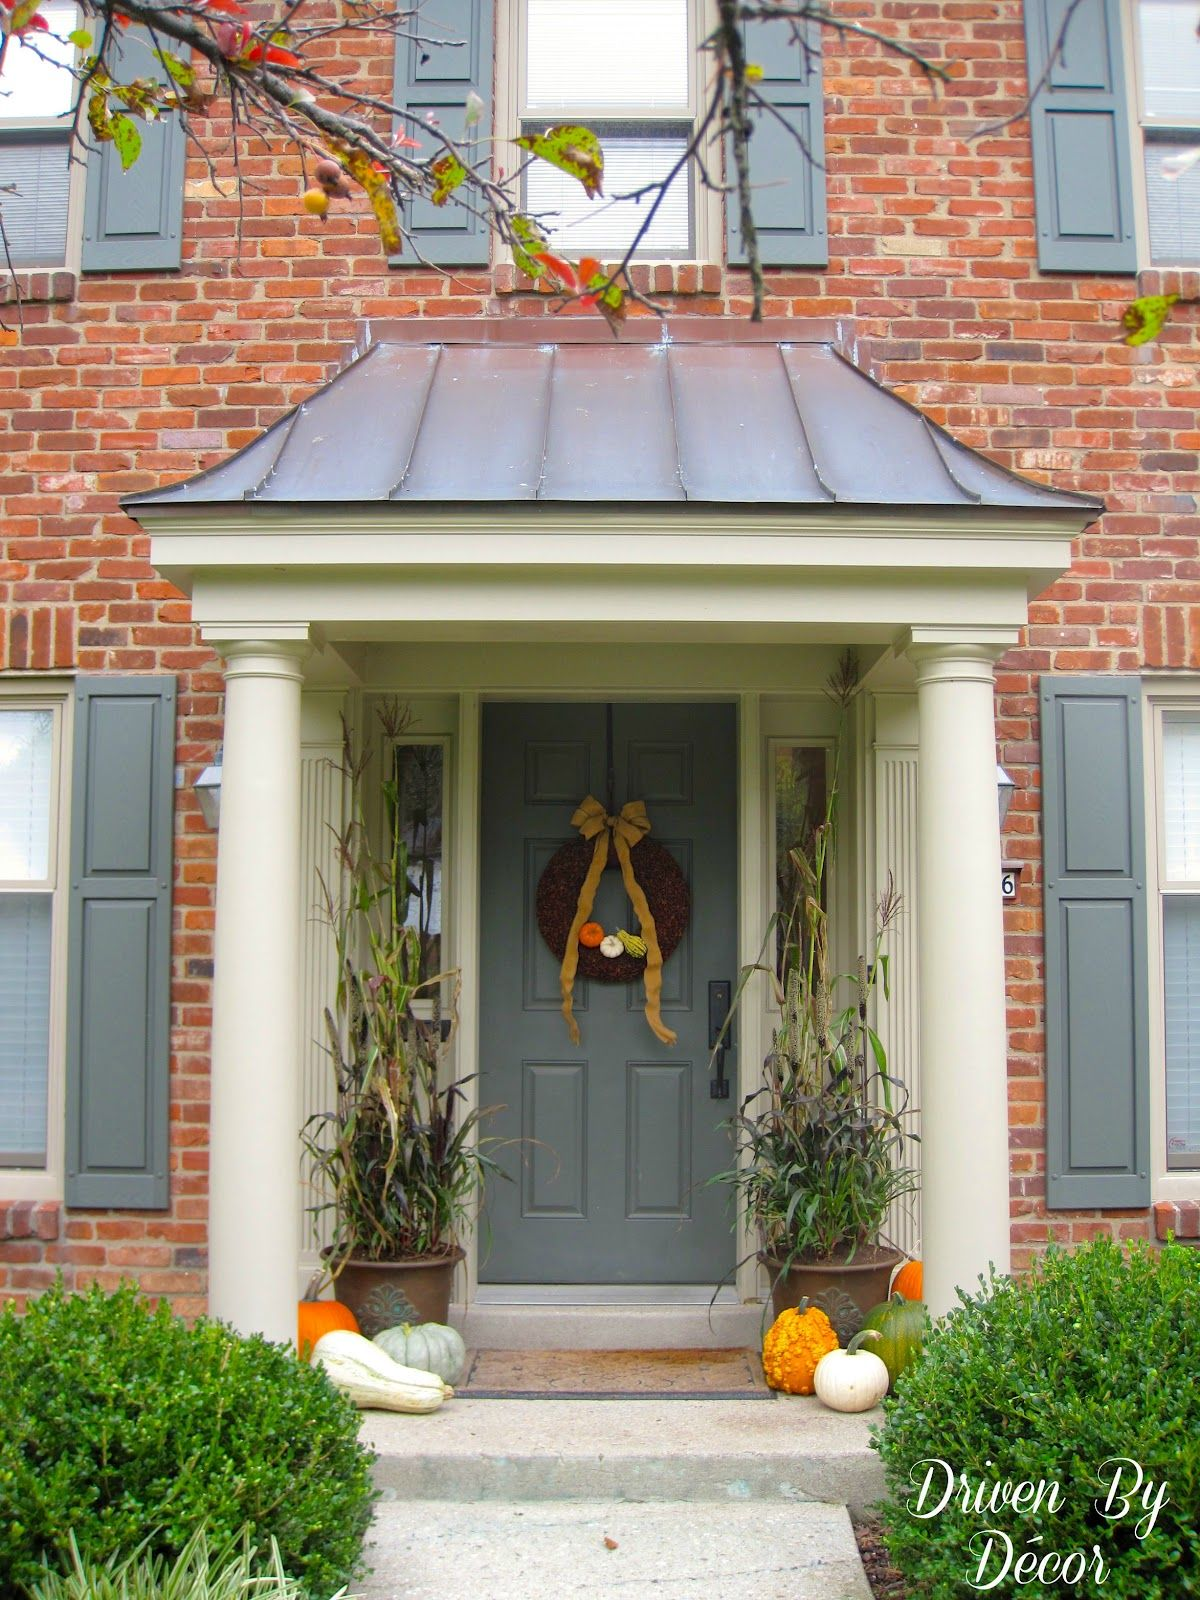 Front porch ideas traditional porch los angeles - Driven By D Cor Decorating My Front Porch For Fall I Love The Look Of